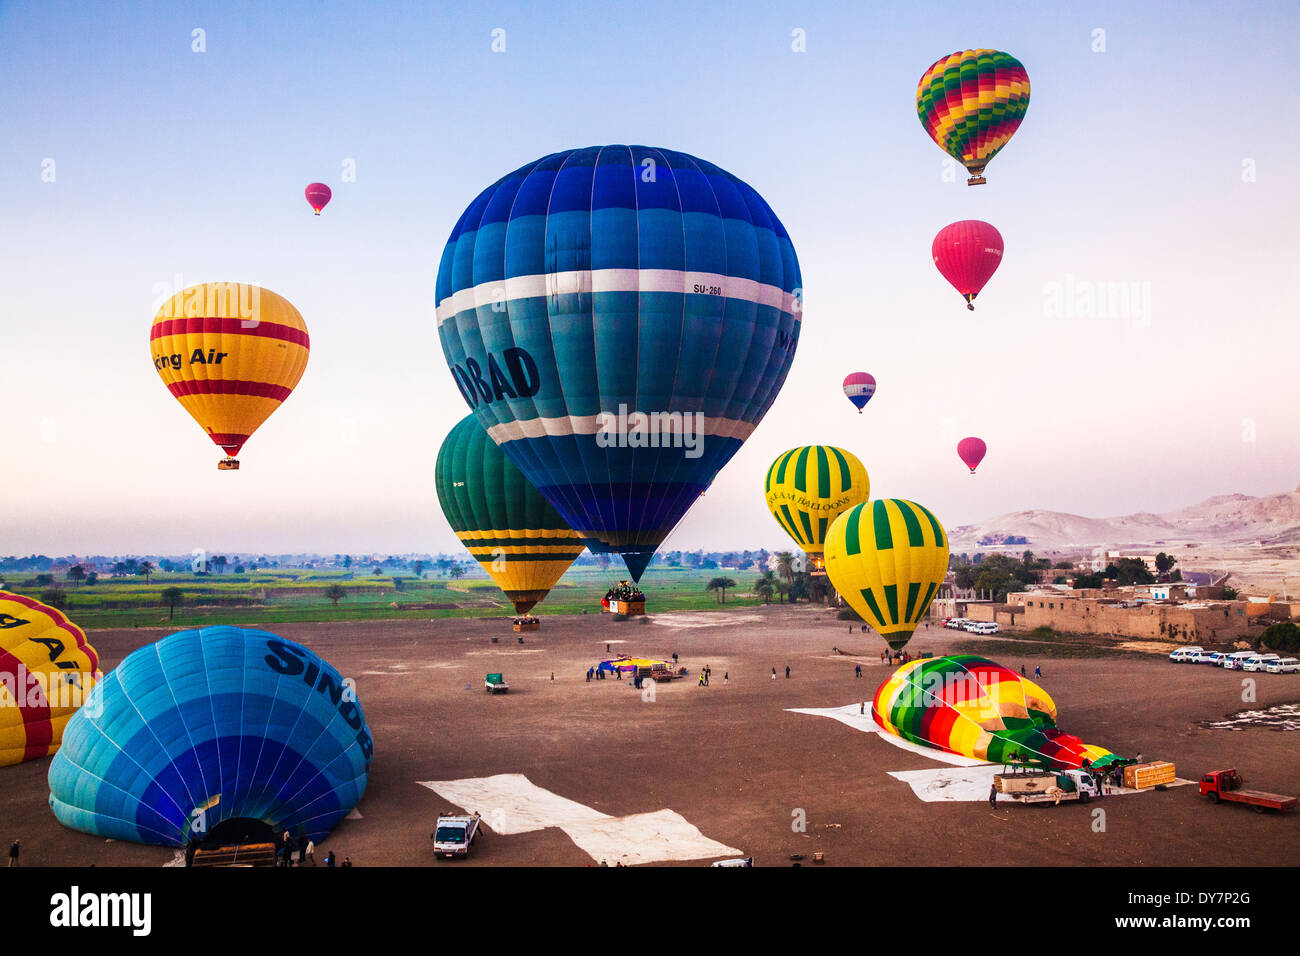 Hot air balloons being inflated and taking off for a sunrise flight from the West Bank of the Nile in Egypt. Stock Photo